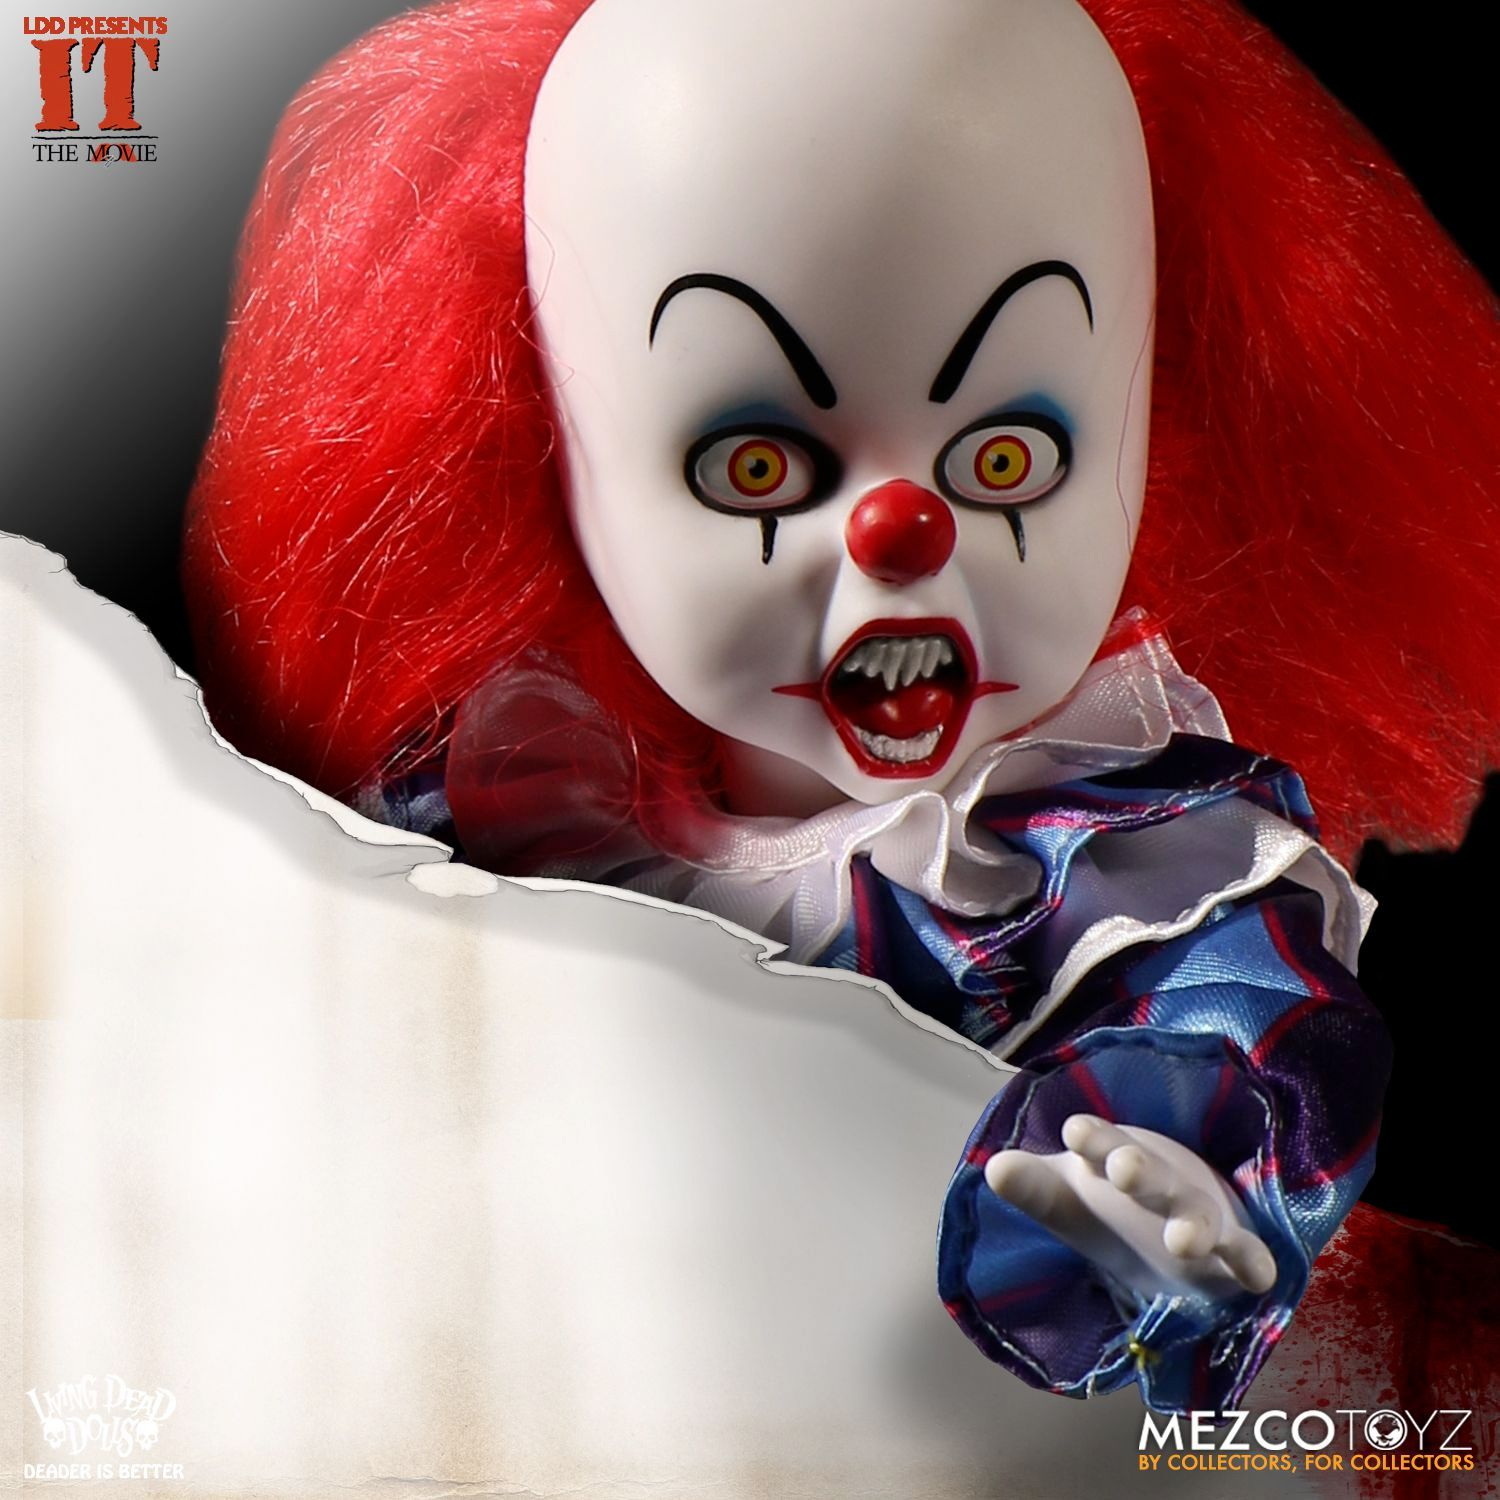 It A Obra Prima Do Medo Best living dead dolls presents: palhaço pennywise em it (1990) de